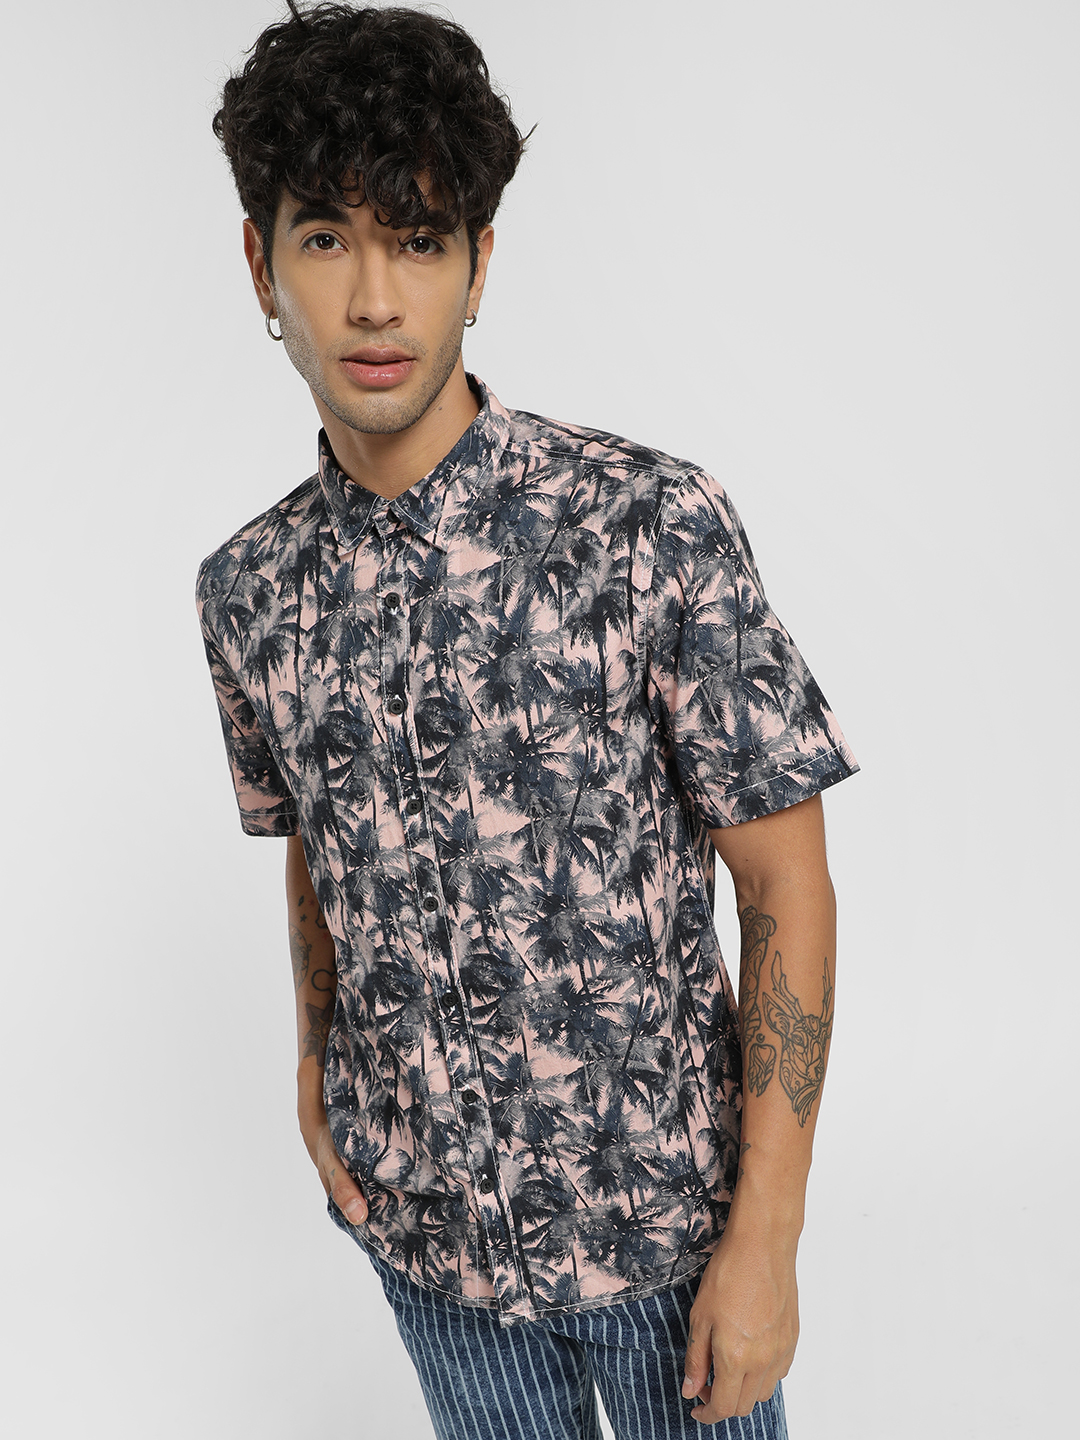 Styx & Stones Pink Tropical Print Short Sleeve Shirt 1